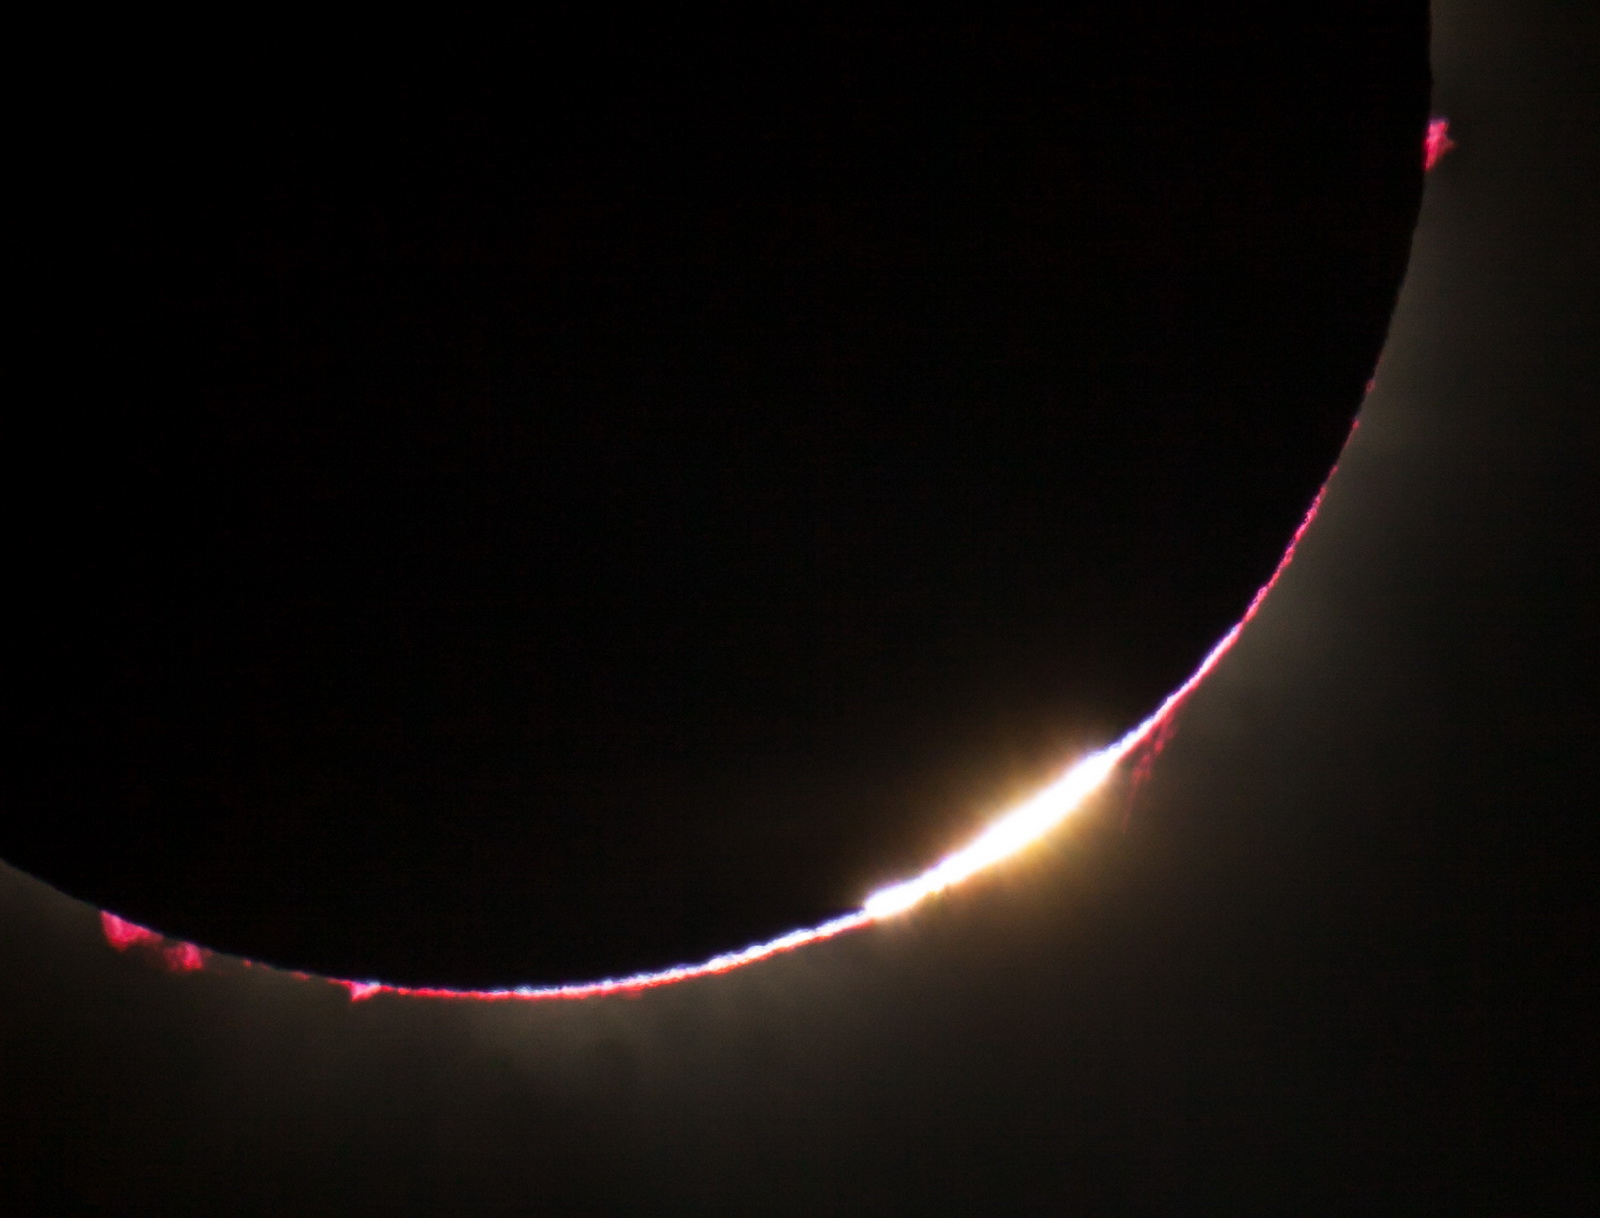 Eclipse - 02 photo